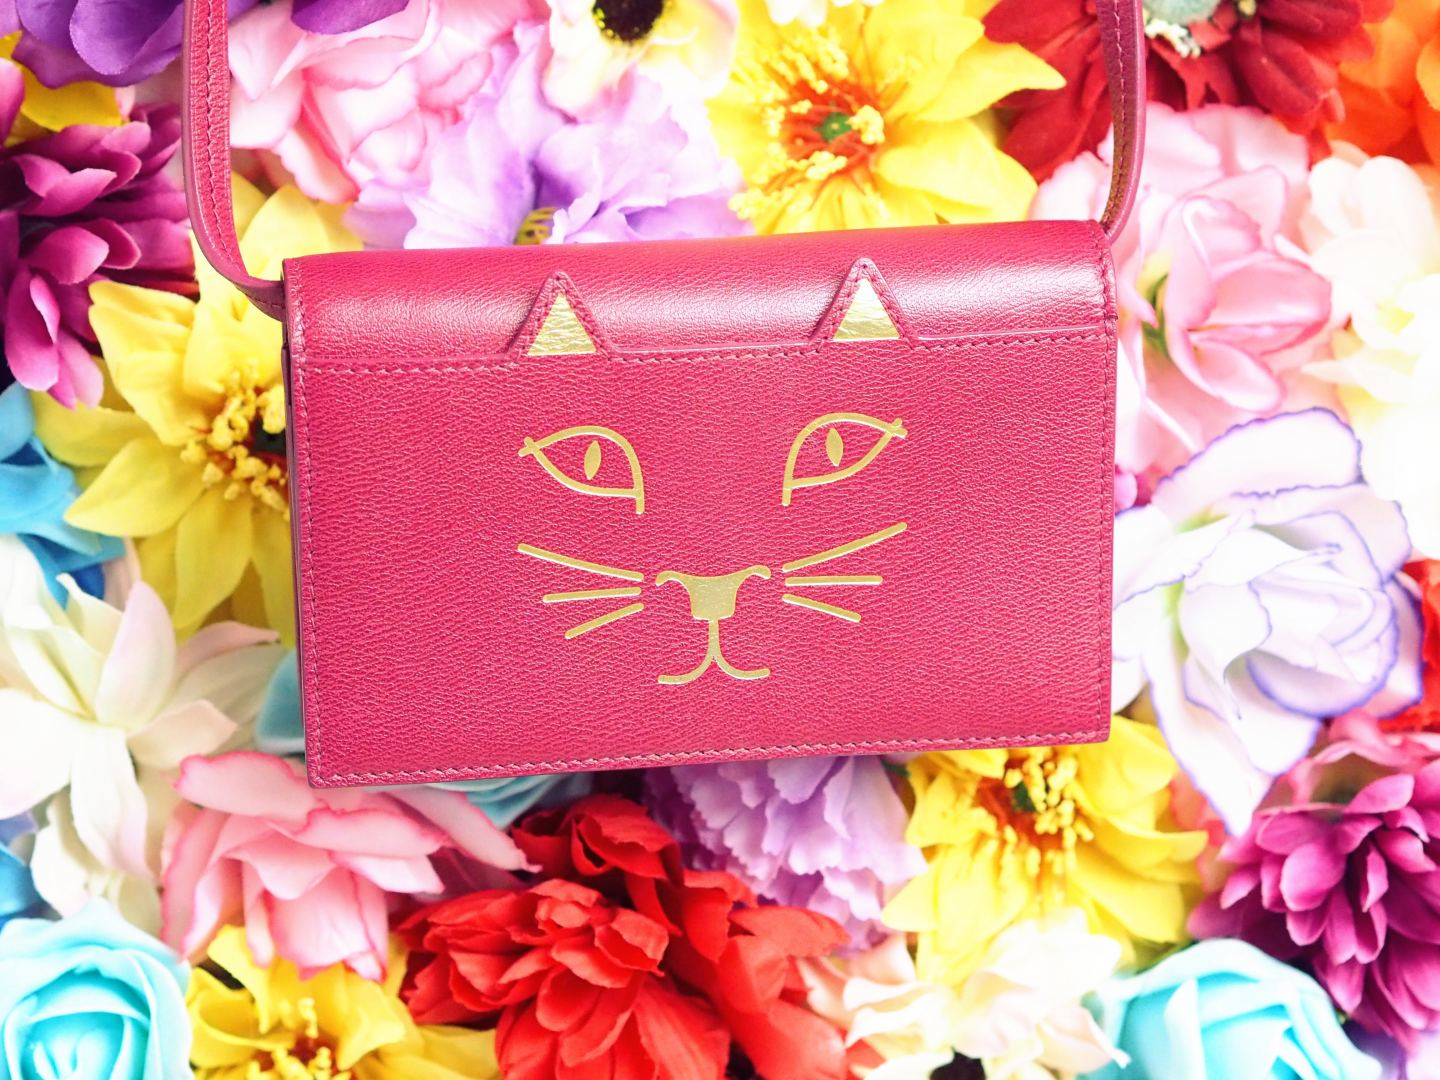 charlotte olympia kitty feline handbag wallet on chain pink red